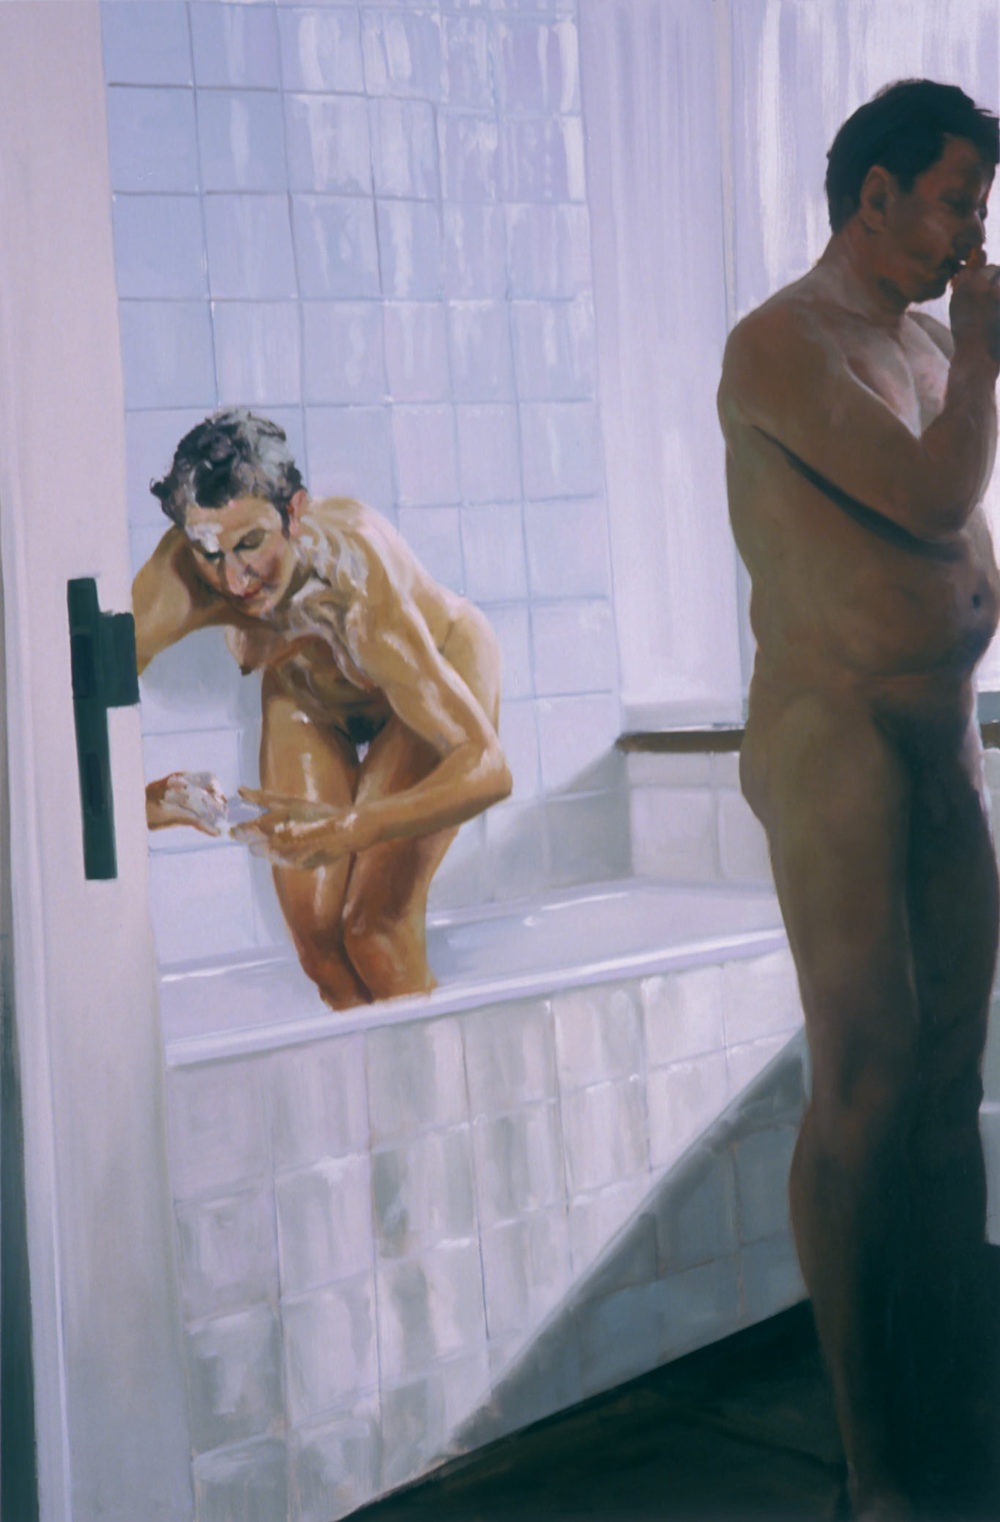 Bathroom, Scene #3, Untitled, 2004.